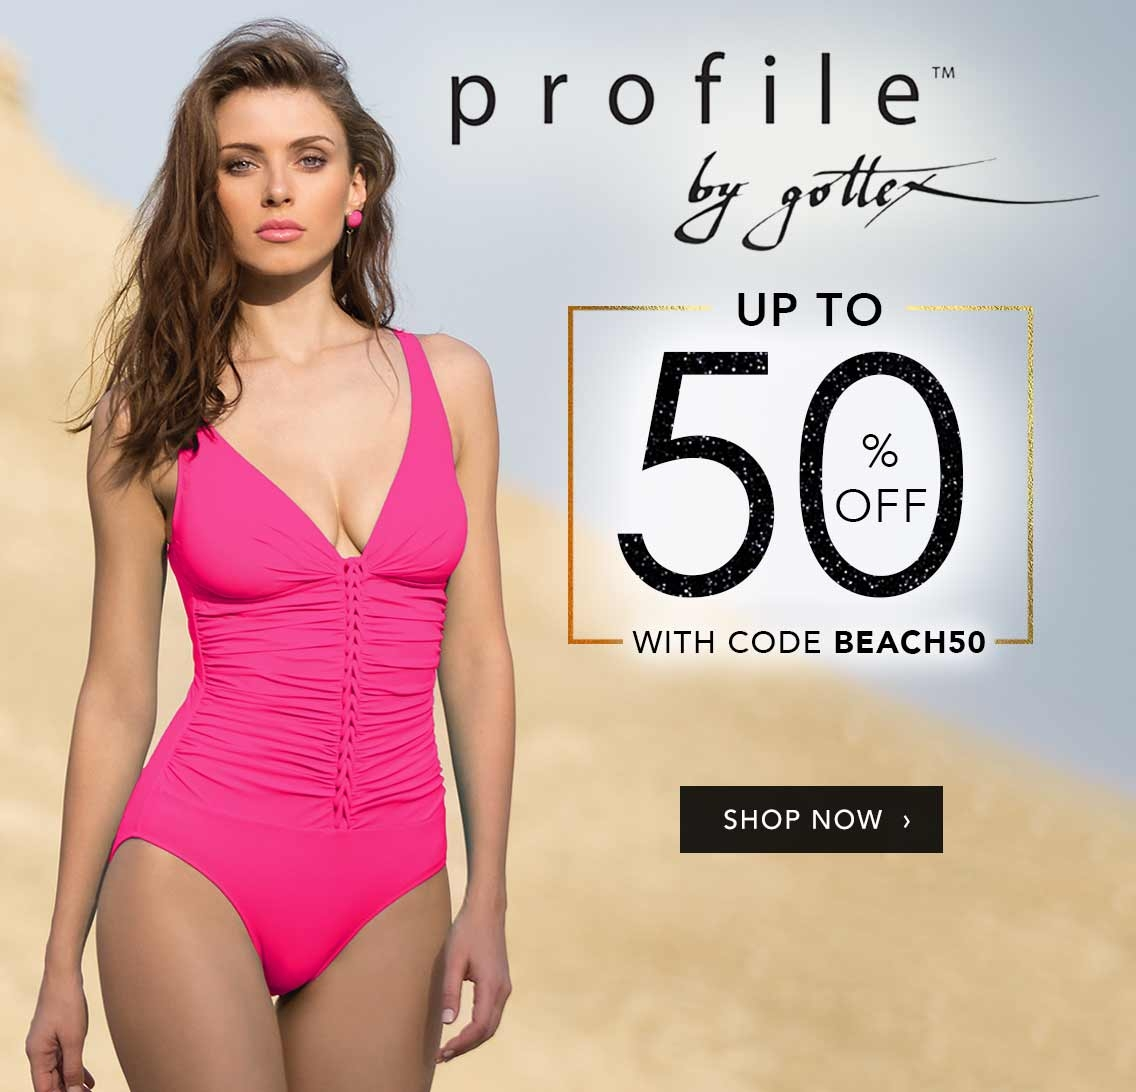 Up to 50% off Profile by Gottex Swimwear